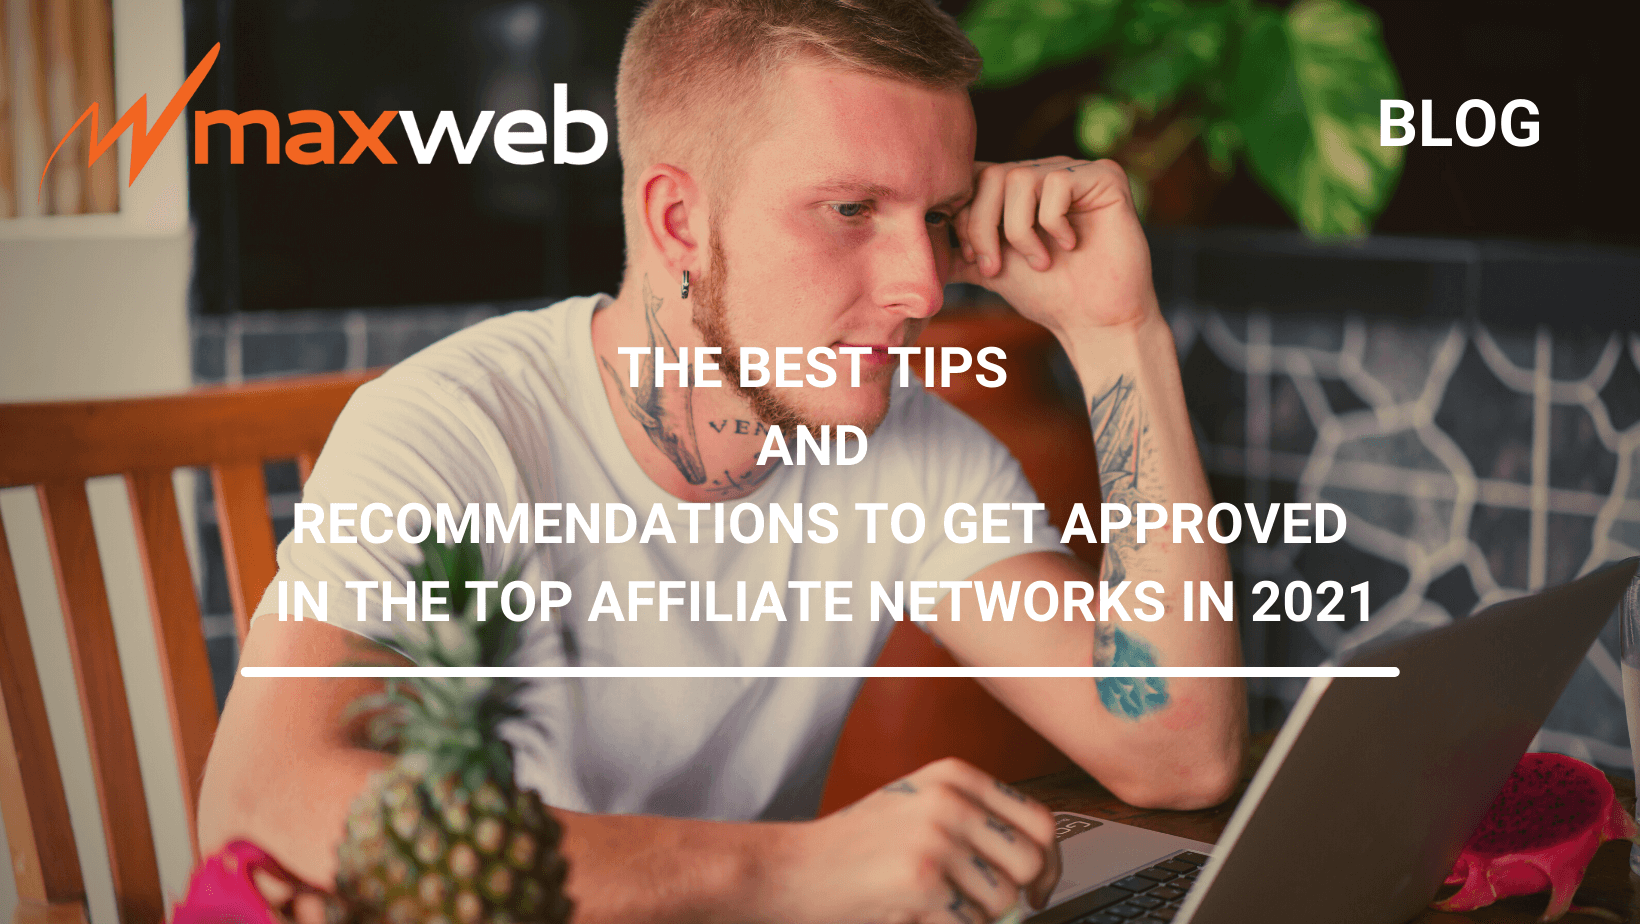 The Best Tips and Recommendations To Get Approved in the Top Affiliate Networks in 2021